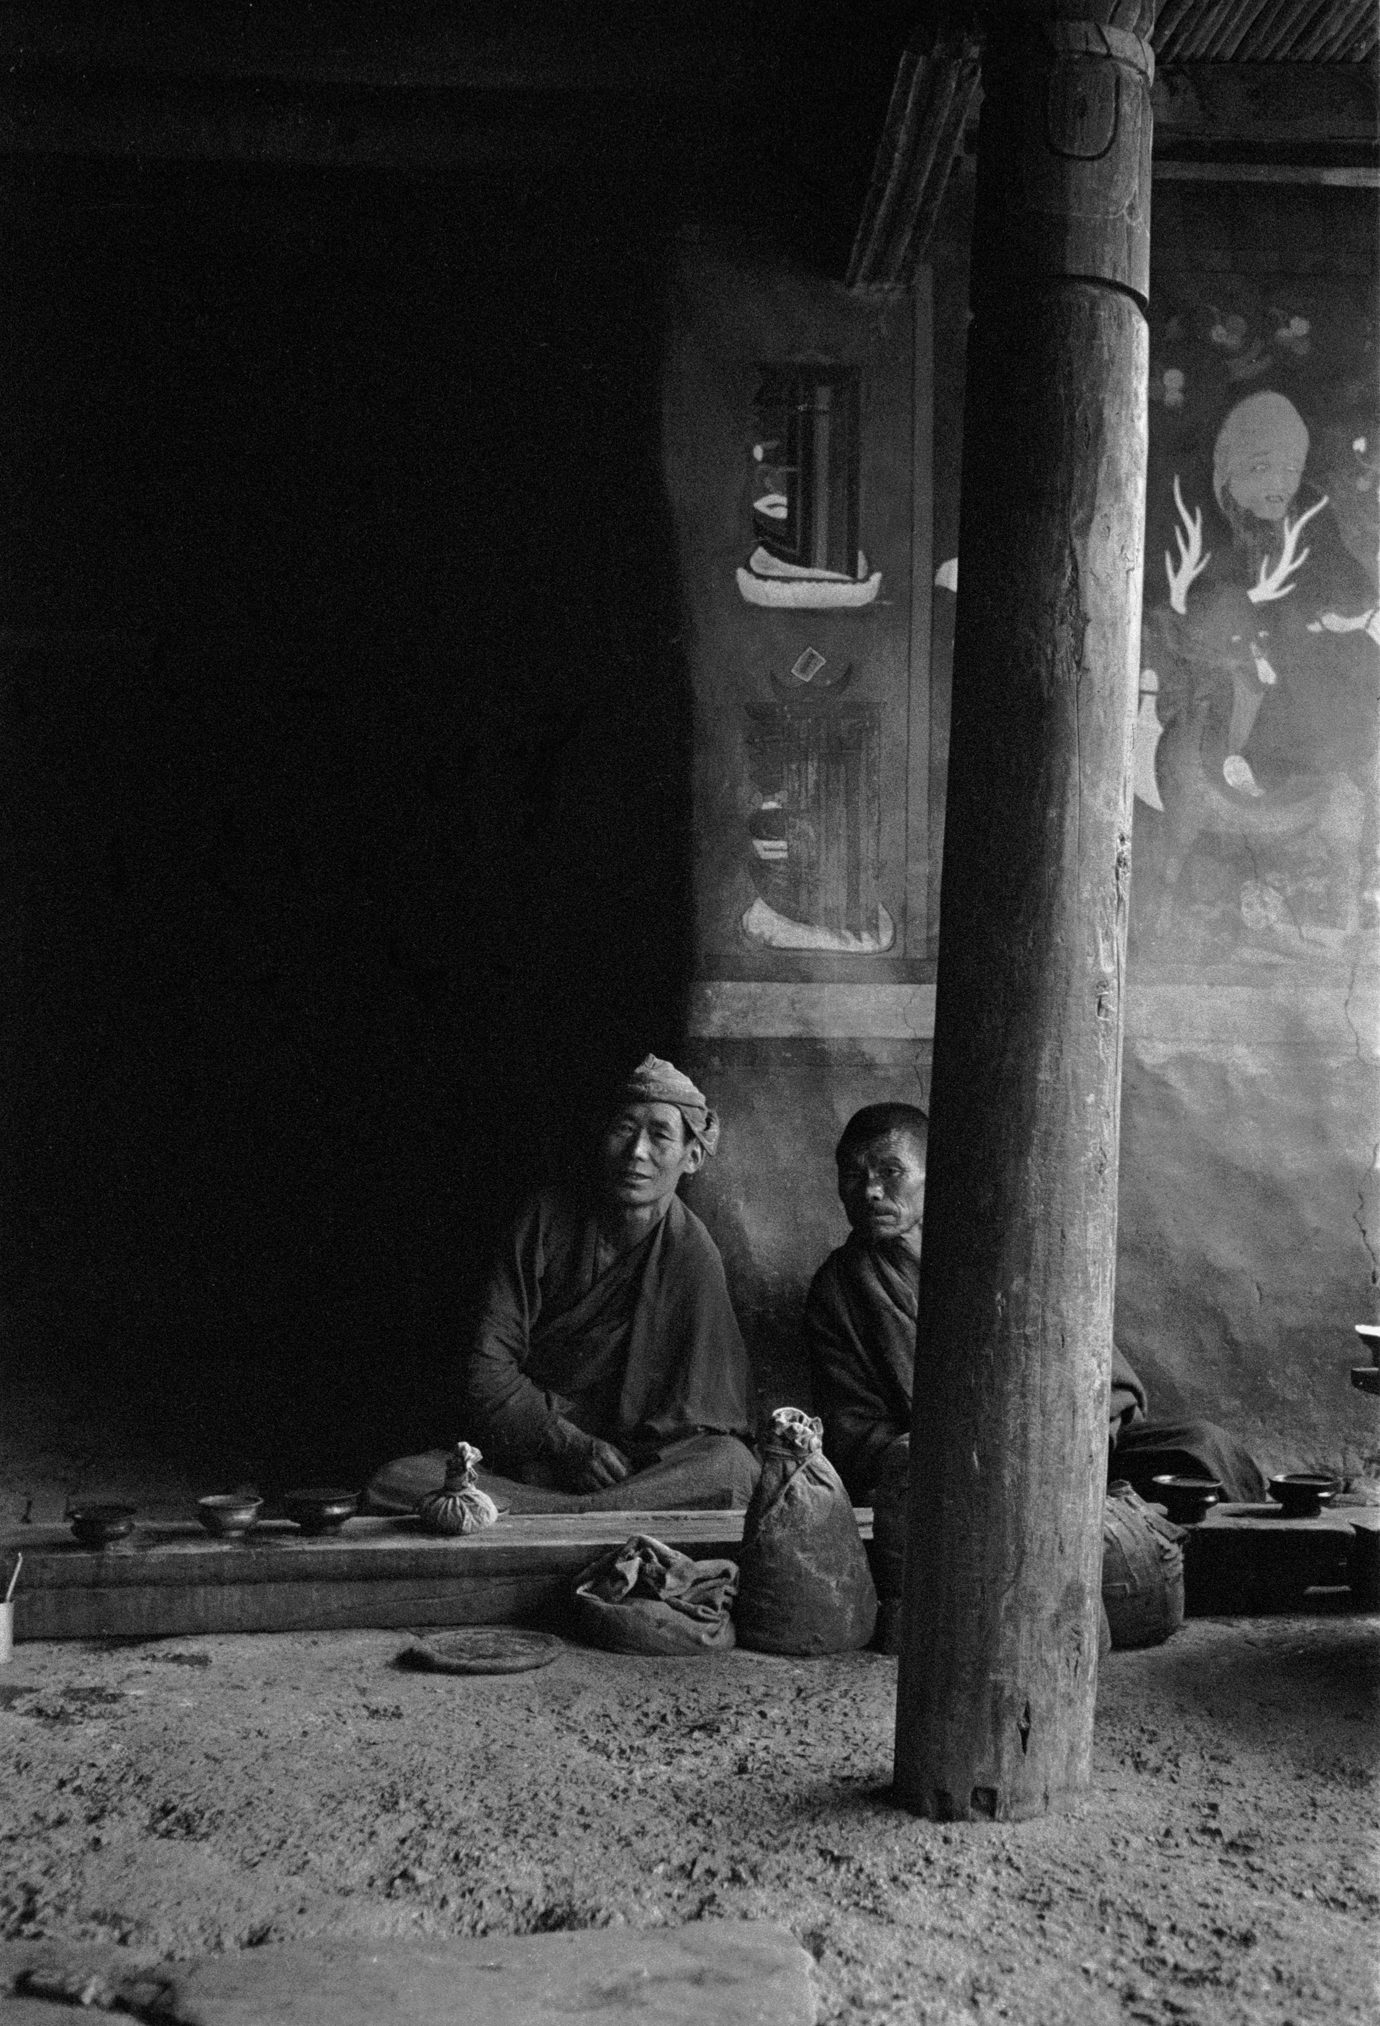 Monks, Lingshed Gompa, Ladakh 1978 - Tim Trompeter